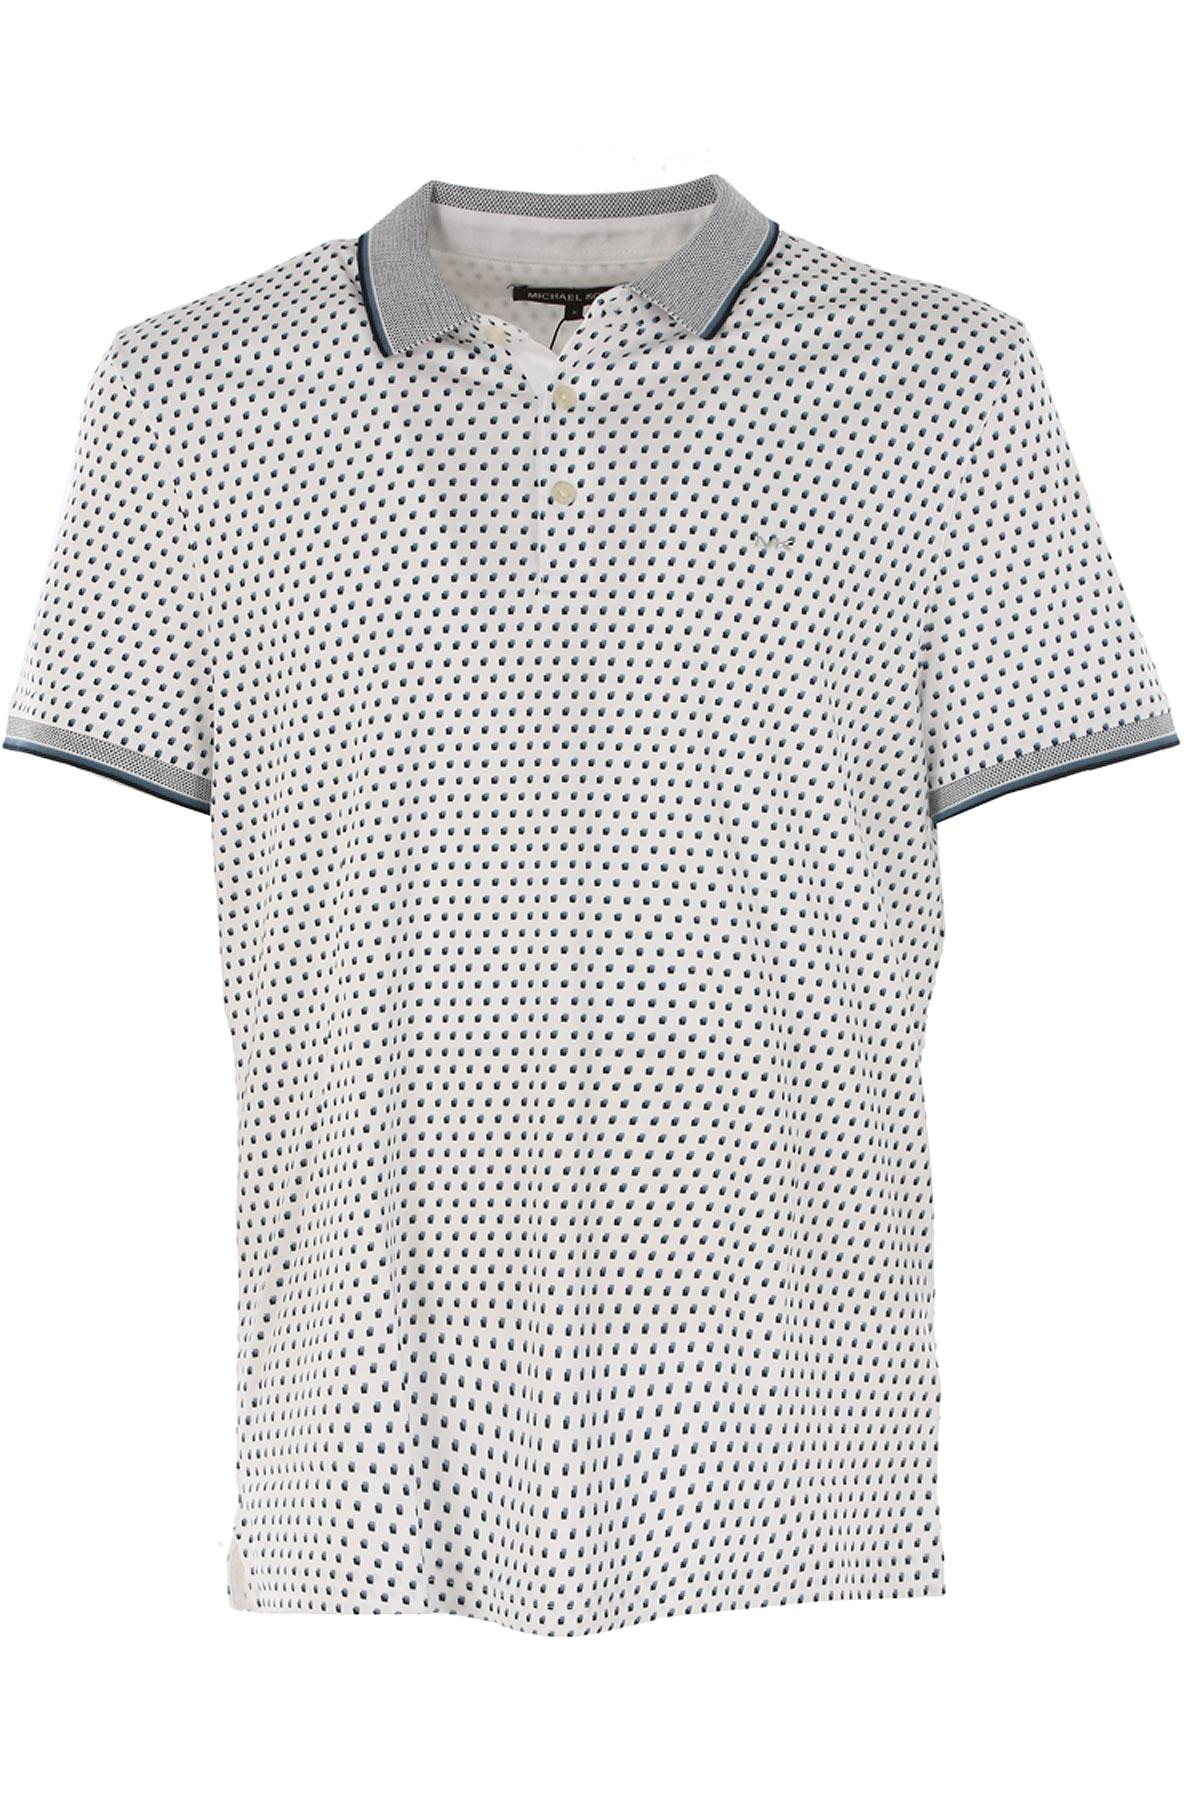 Lyst Michael Kors Polo Shirt For Men On Sale In Outlet In White